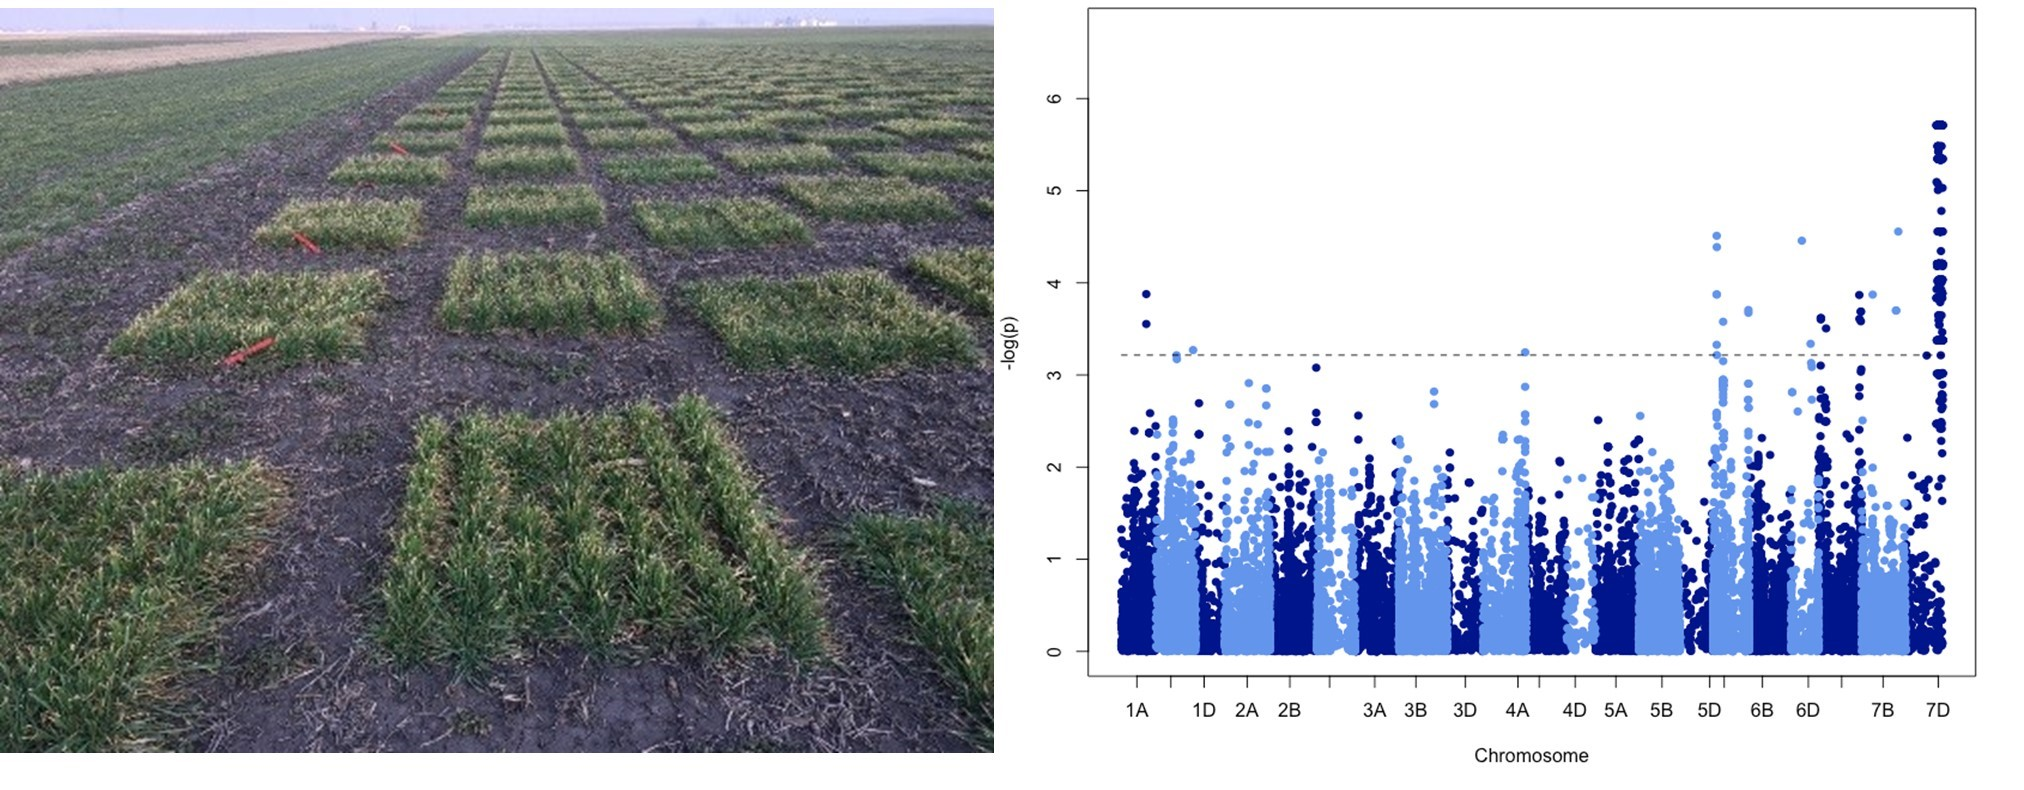 Two layouts of 13 column x 24 rows were planted side-by-side in ACRE to evaluate grain yield and yield components. For grain yield marker trait associations were stably identified in the two replicates individually and in the average dataset.